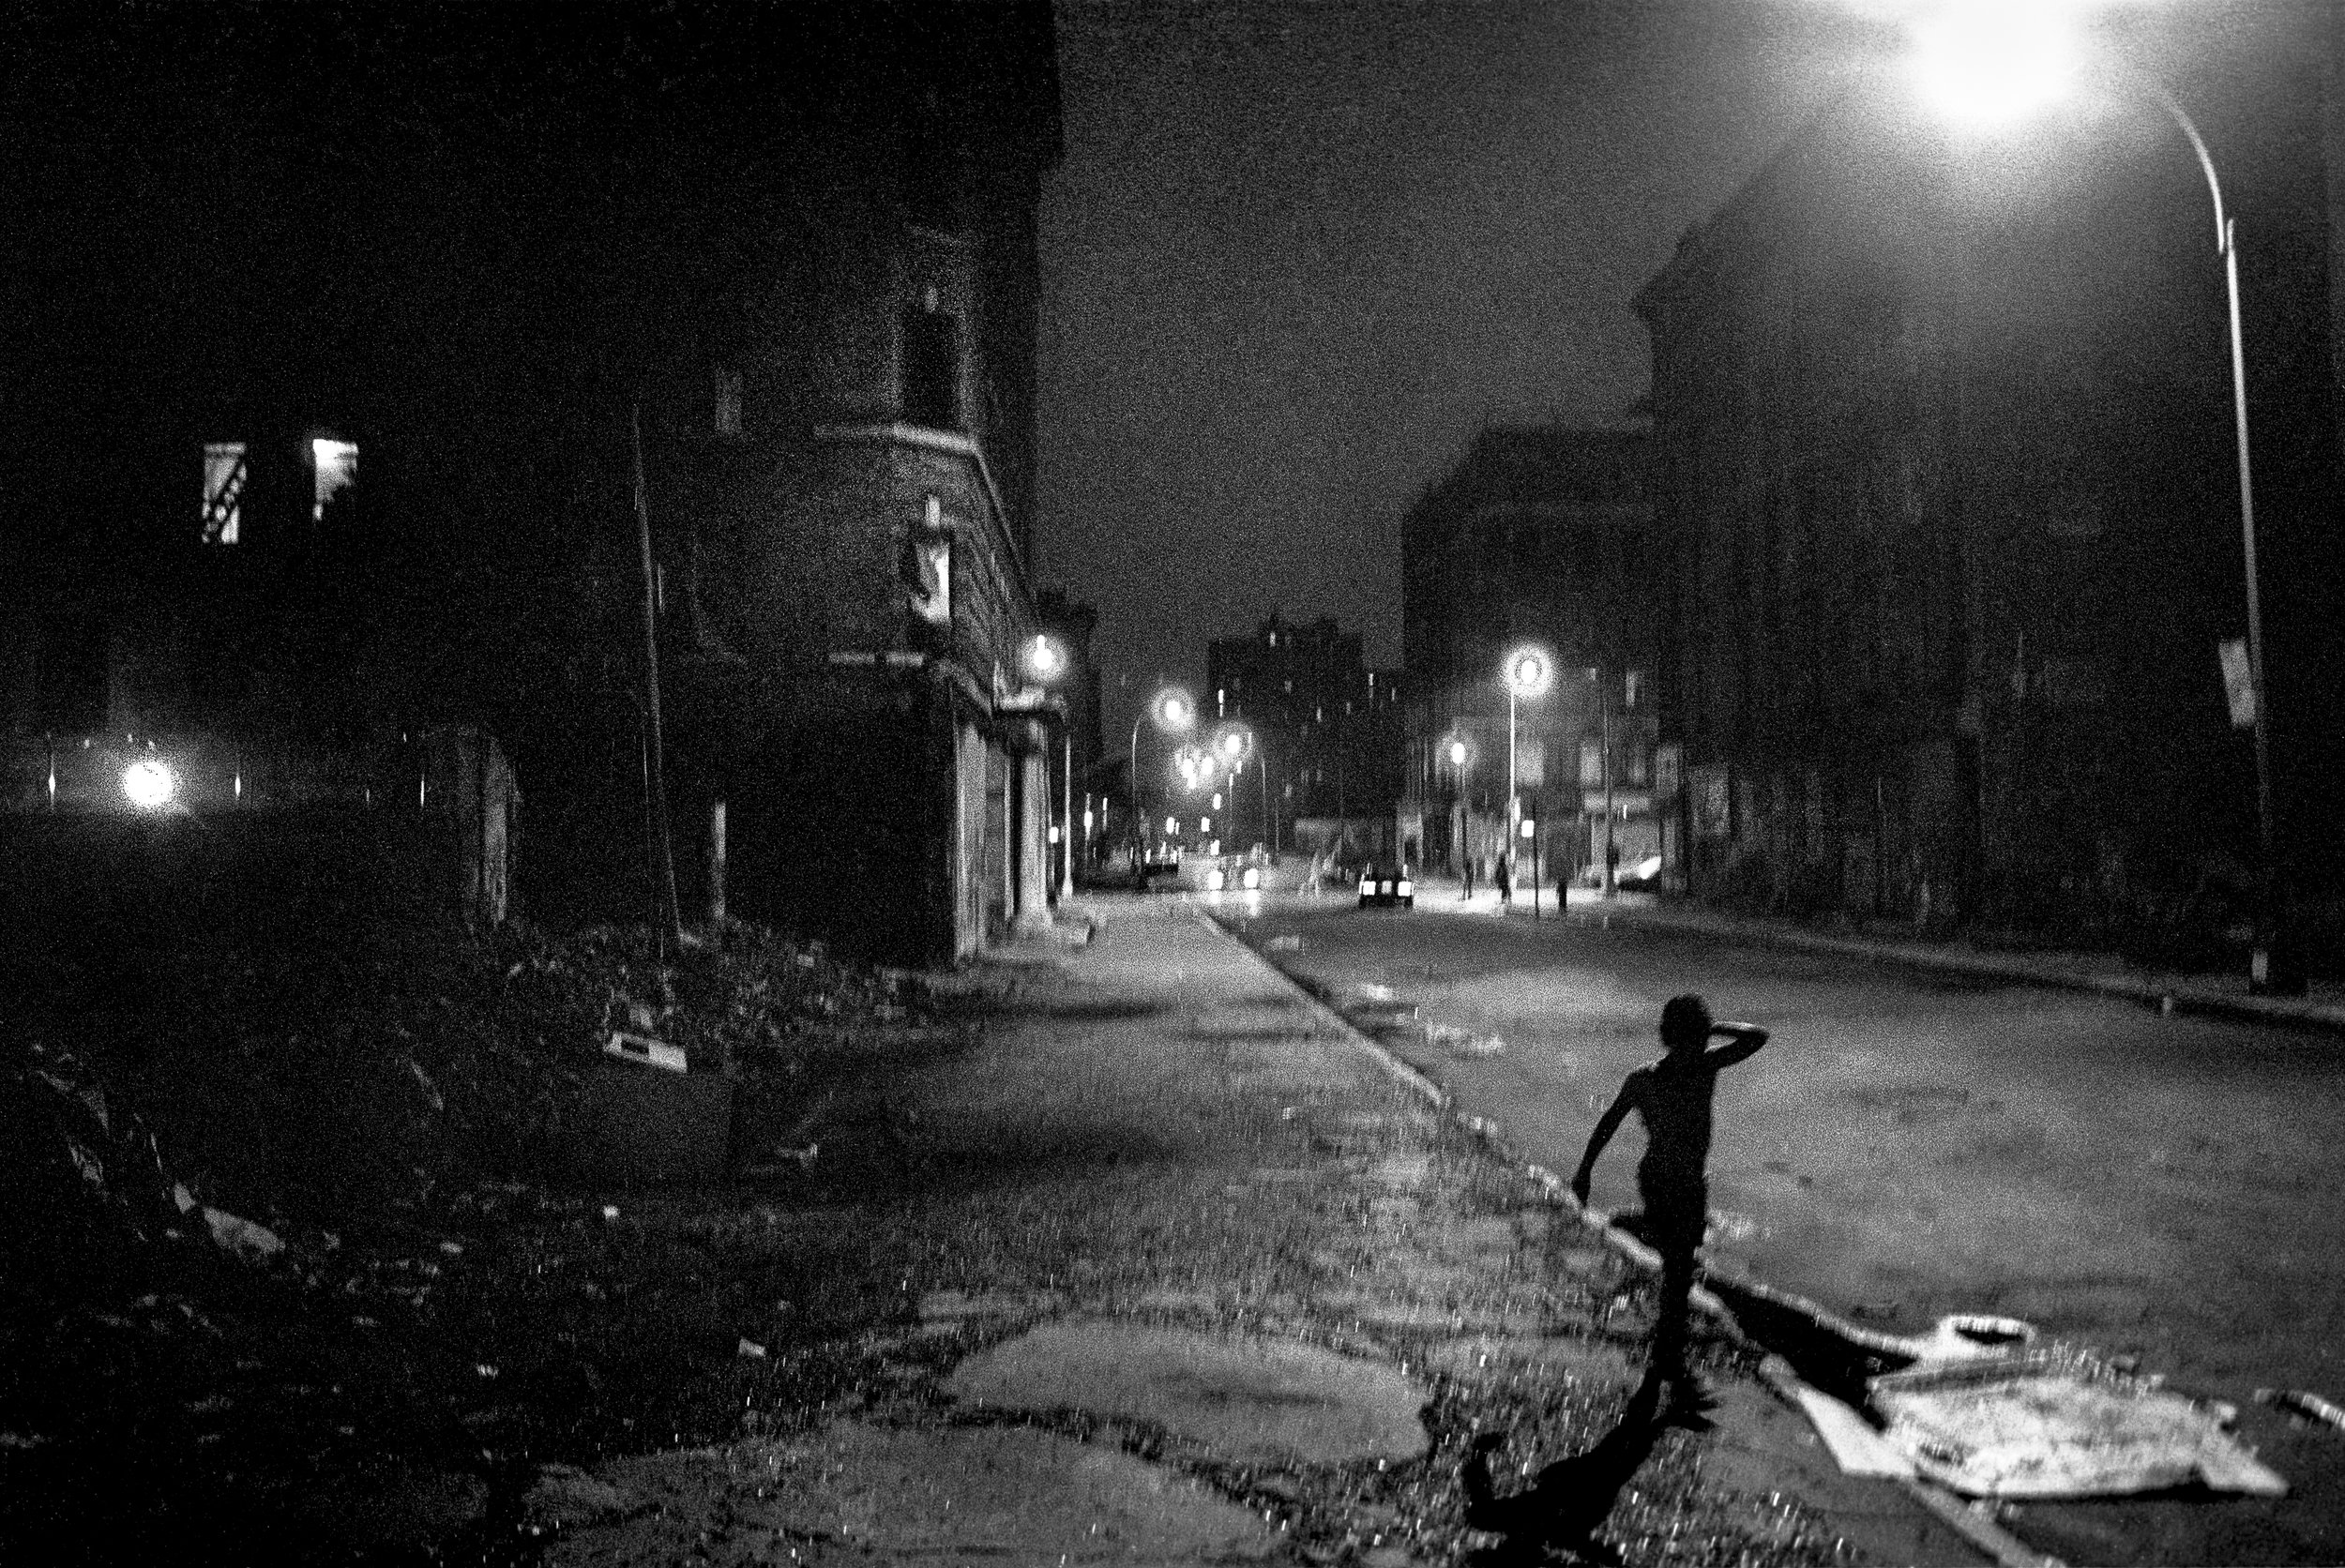 Boy on East 5th St, 4th of July, 1984 (Invisible City)23.9July84-14_Boy_on_5th_st.jpg